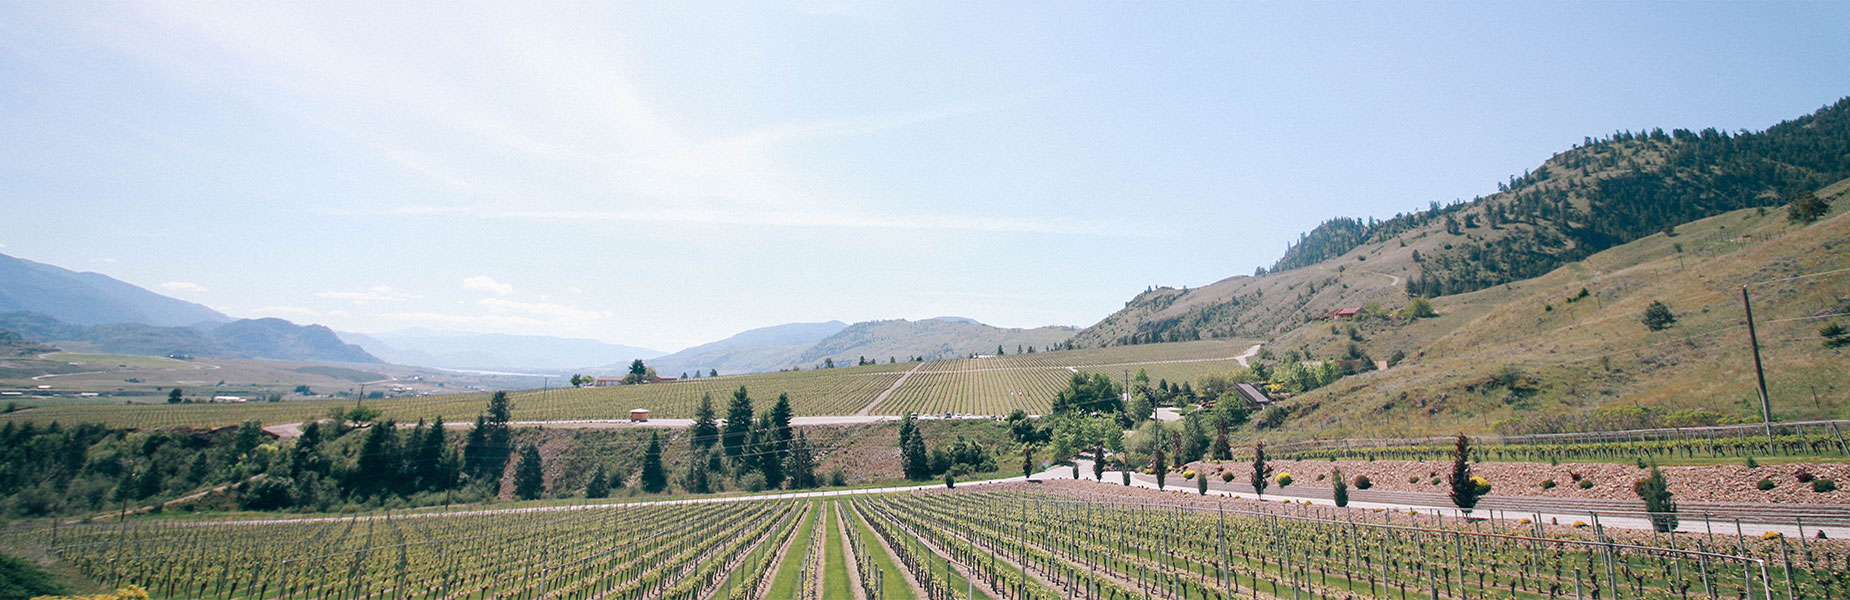 EasyGo Holidays lets you enjoy the great outdoors in the Okanagan Valley while still being able to tour around and enjoy all the areas have to offer.